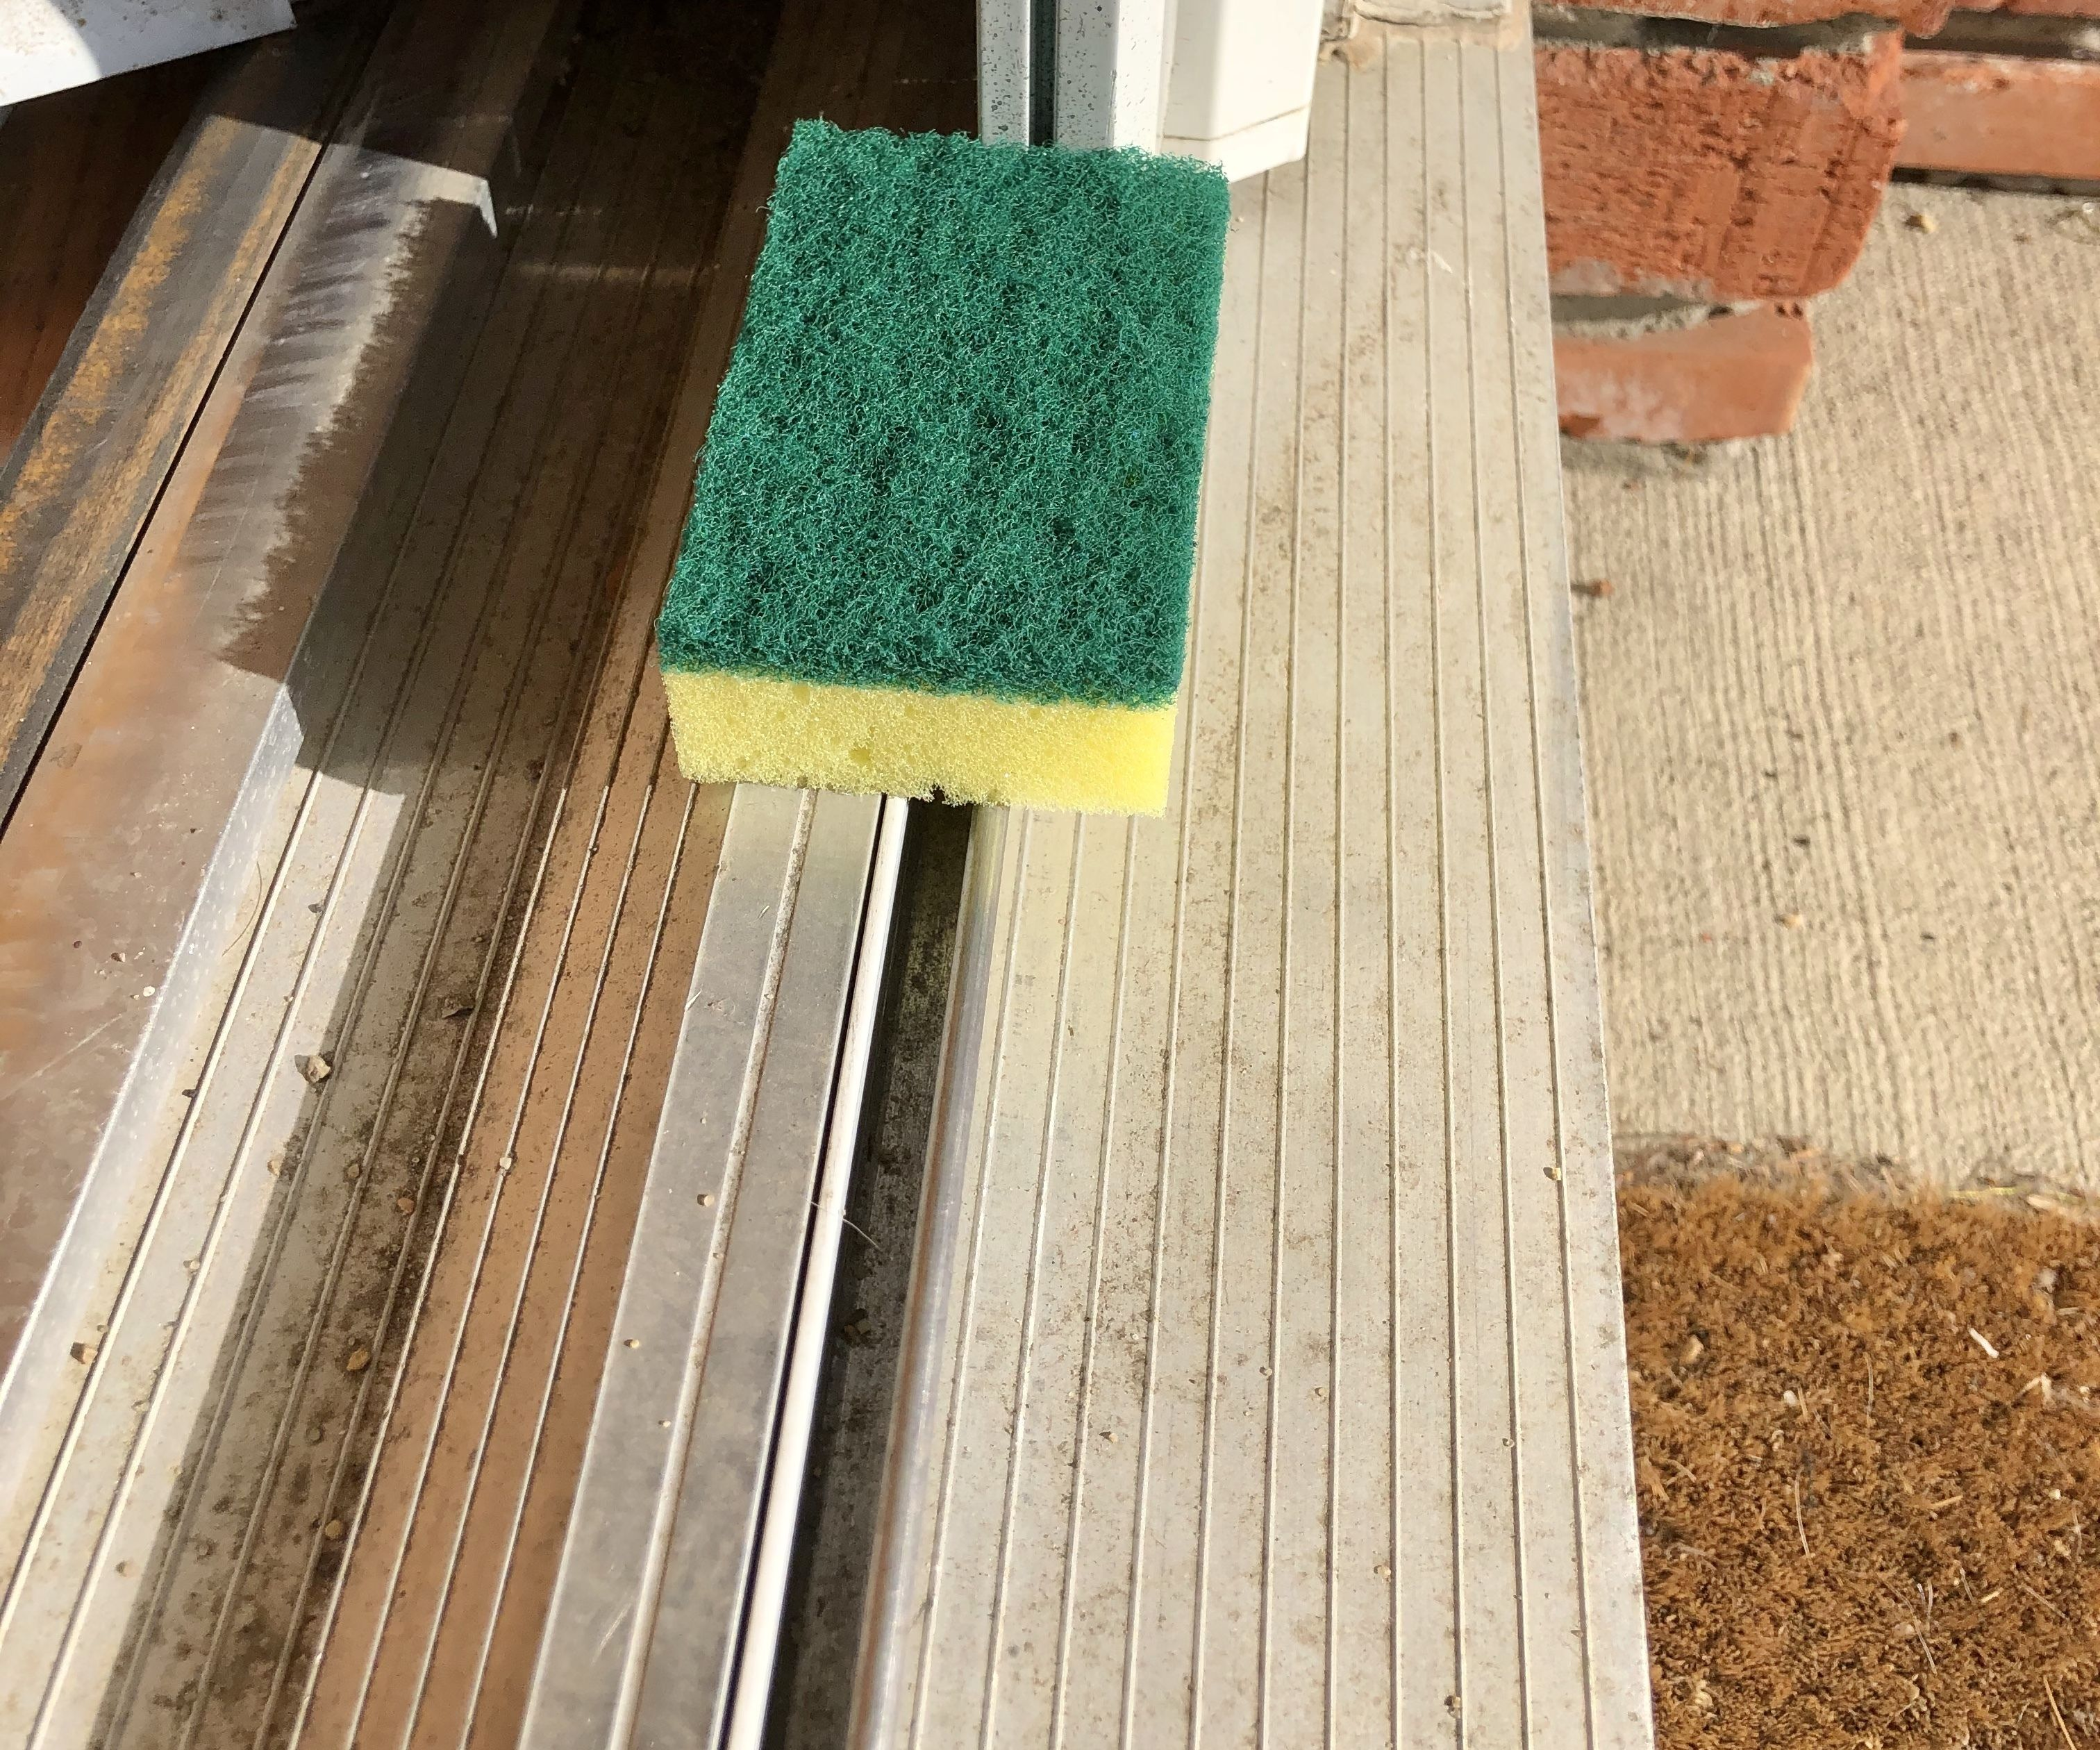 Hack for Cleaning Inside Sliding Window and Door Tracks